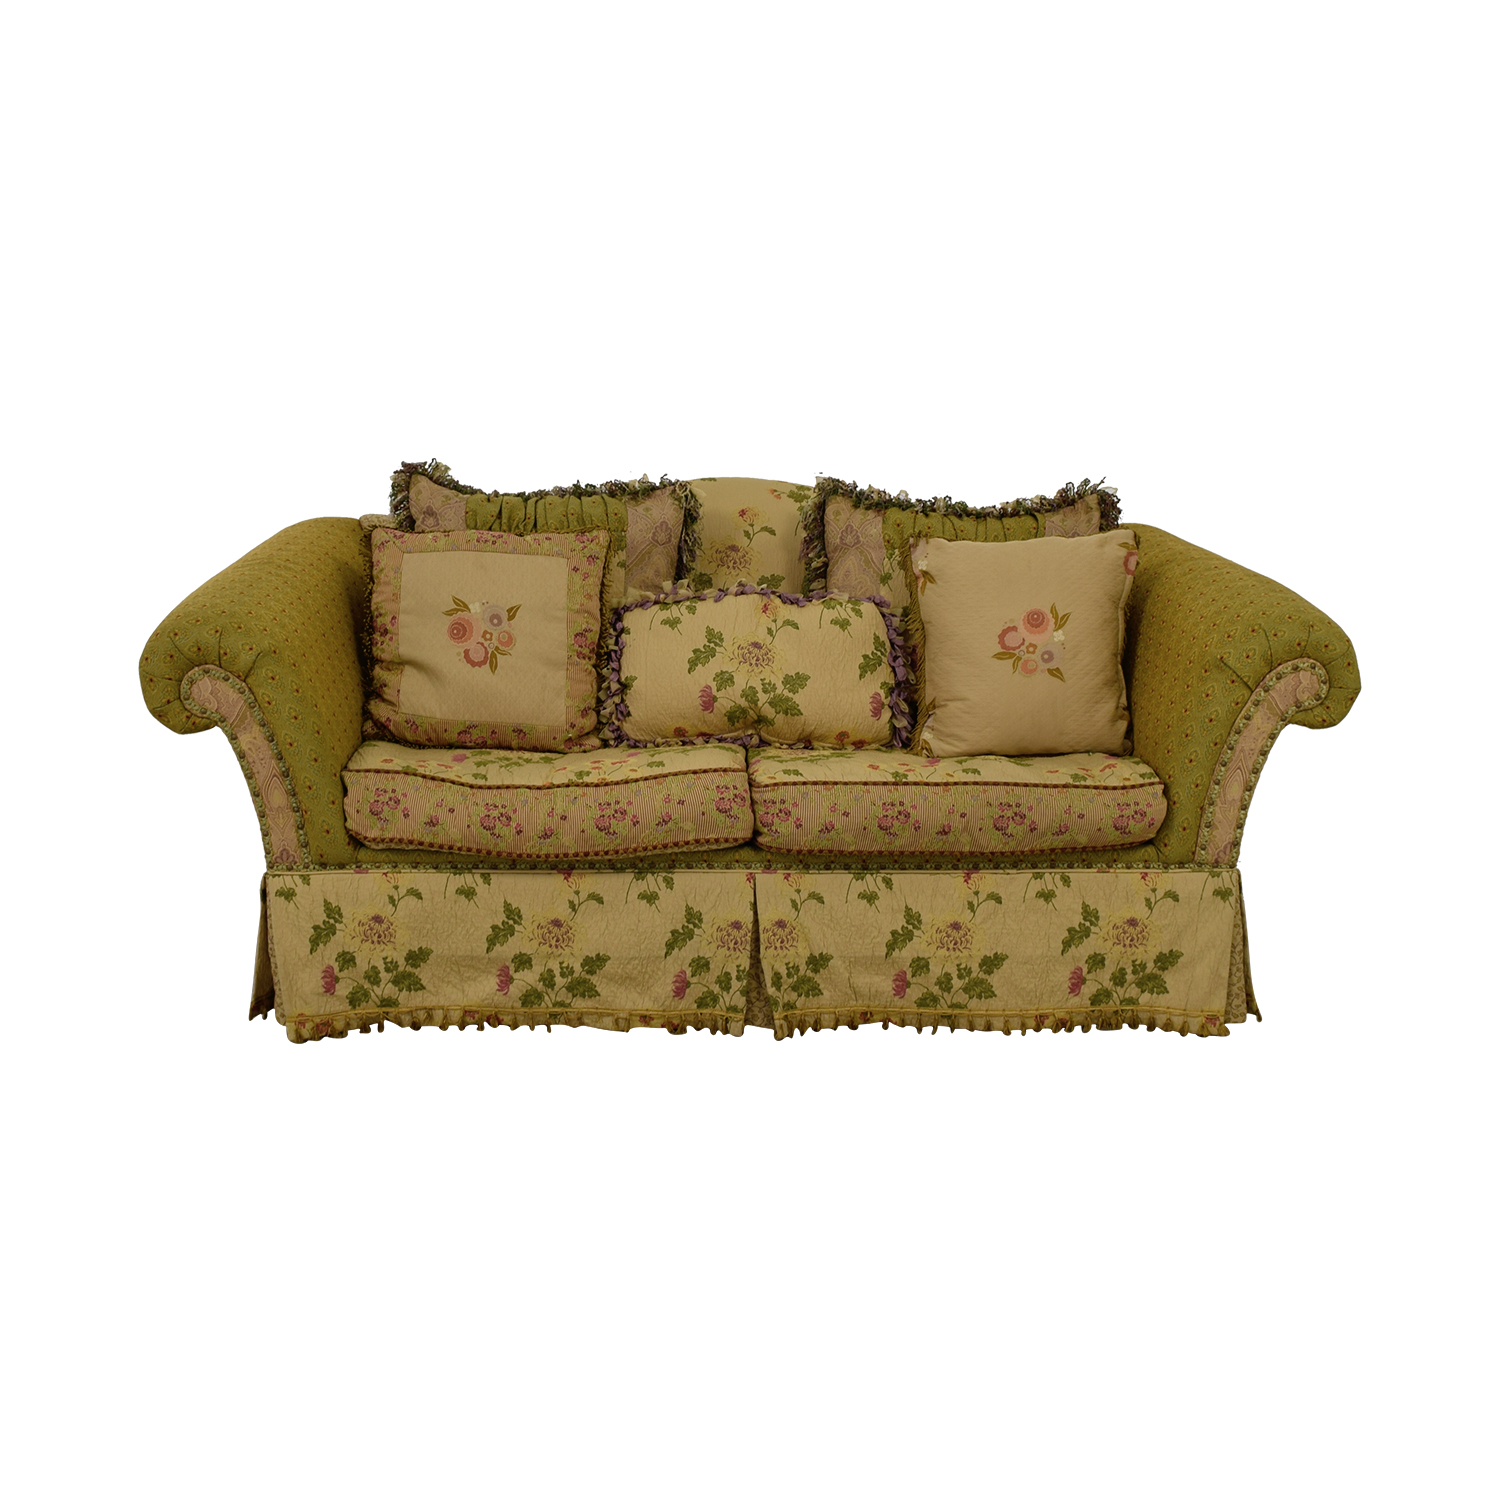 Domain Domain Down Filled Floral Green Two-Cushion Sofa on sale